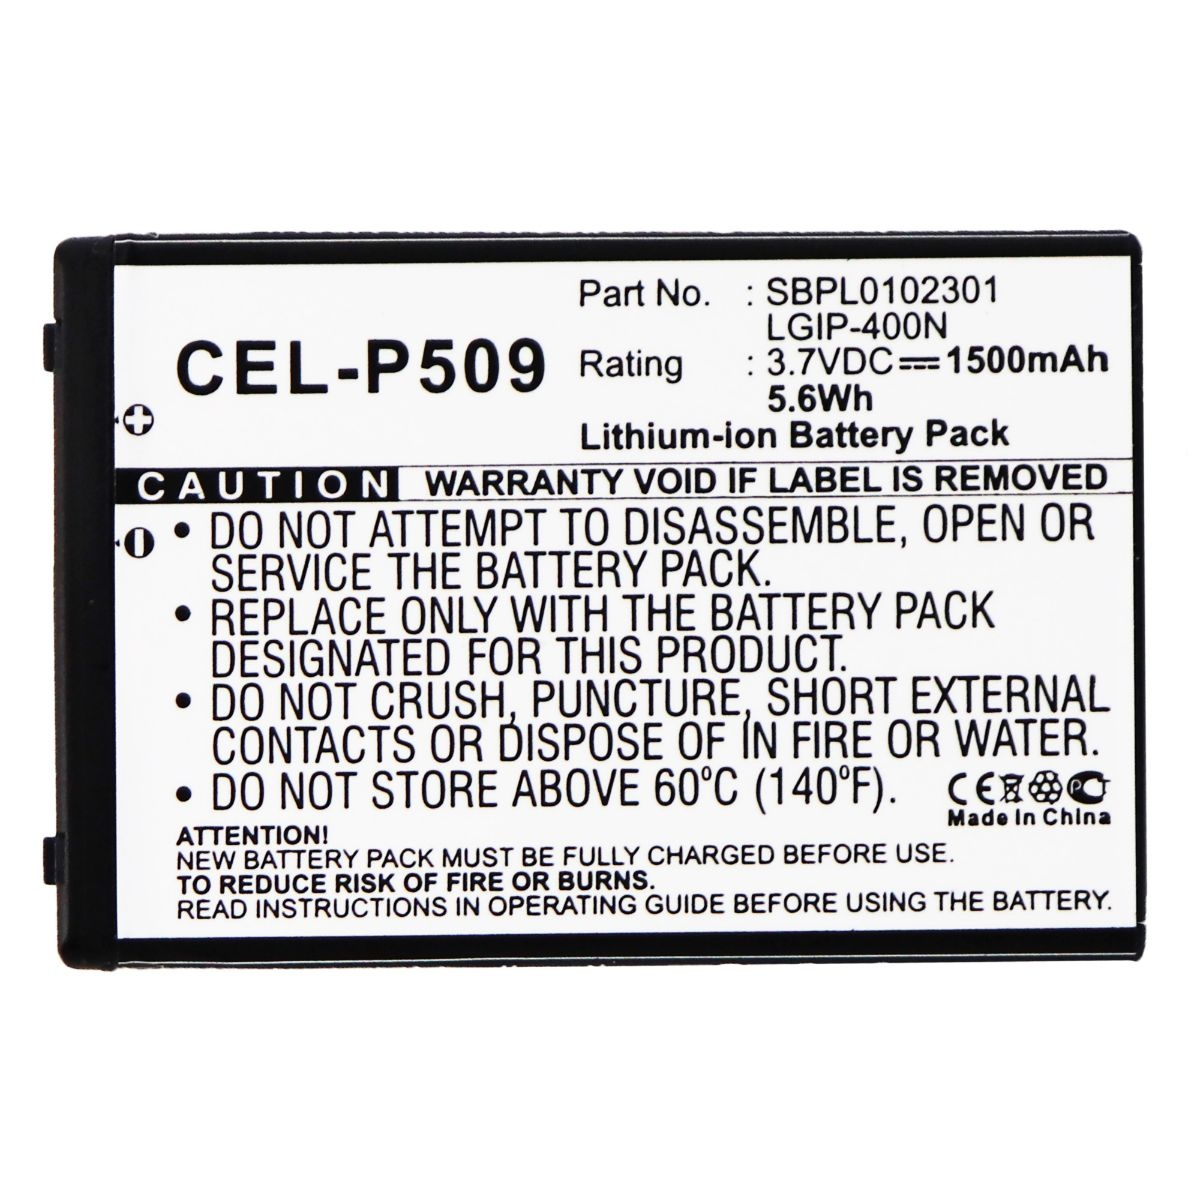 UltraLast Rechargeable Battery for Select LG Smartphones - CEL-P509